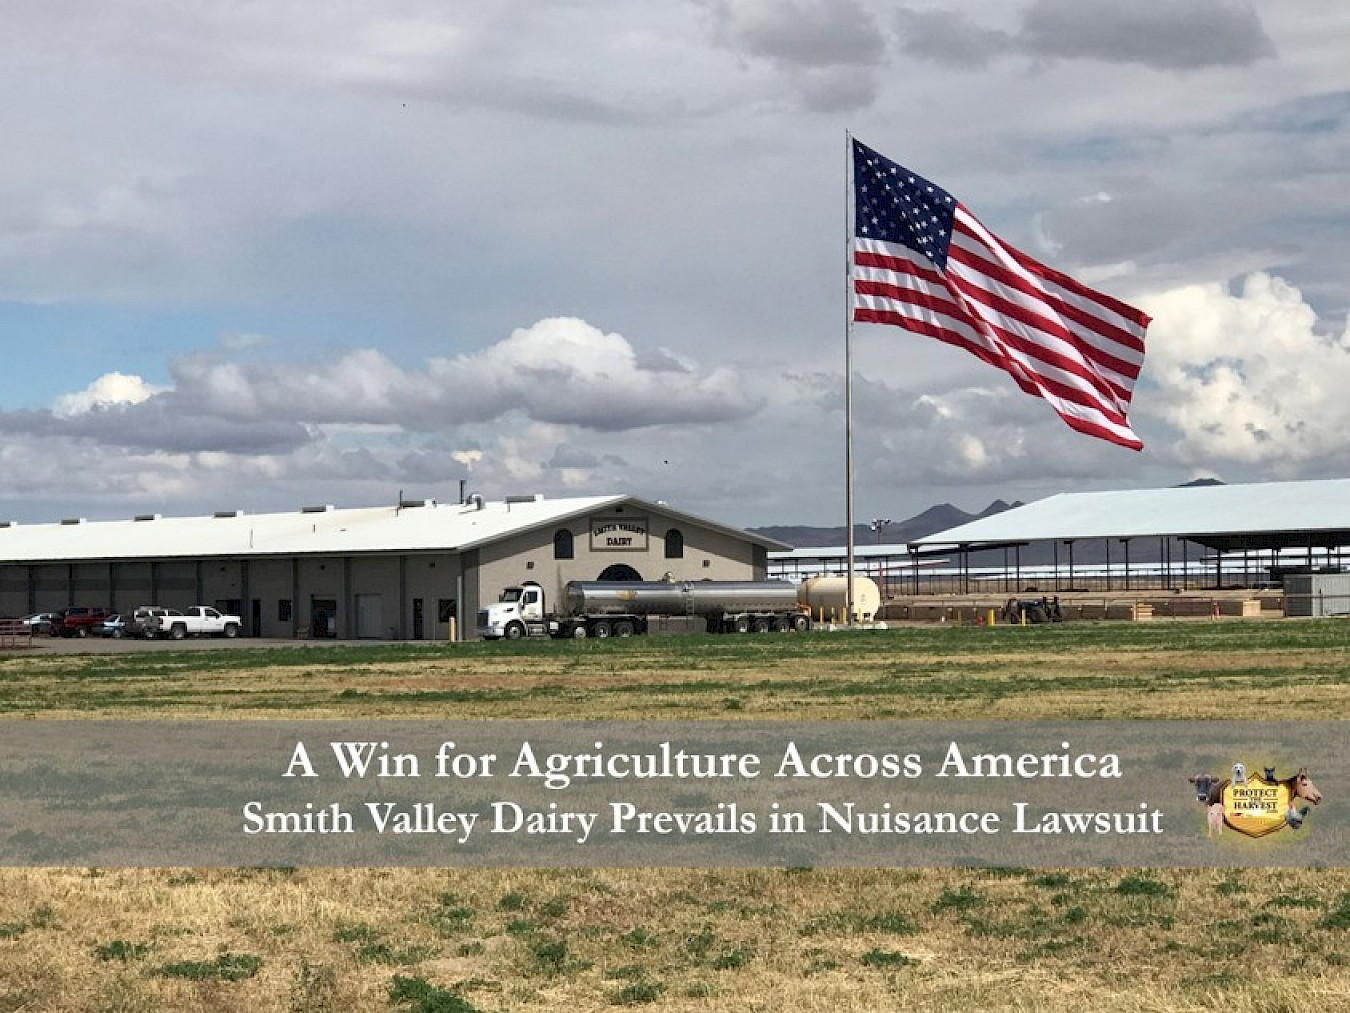 A Win for Agriculture Across America - Smith Valley Dairy Prevails